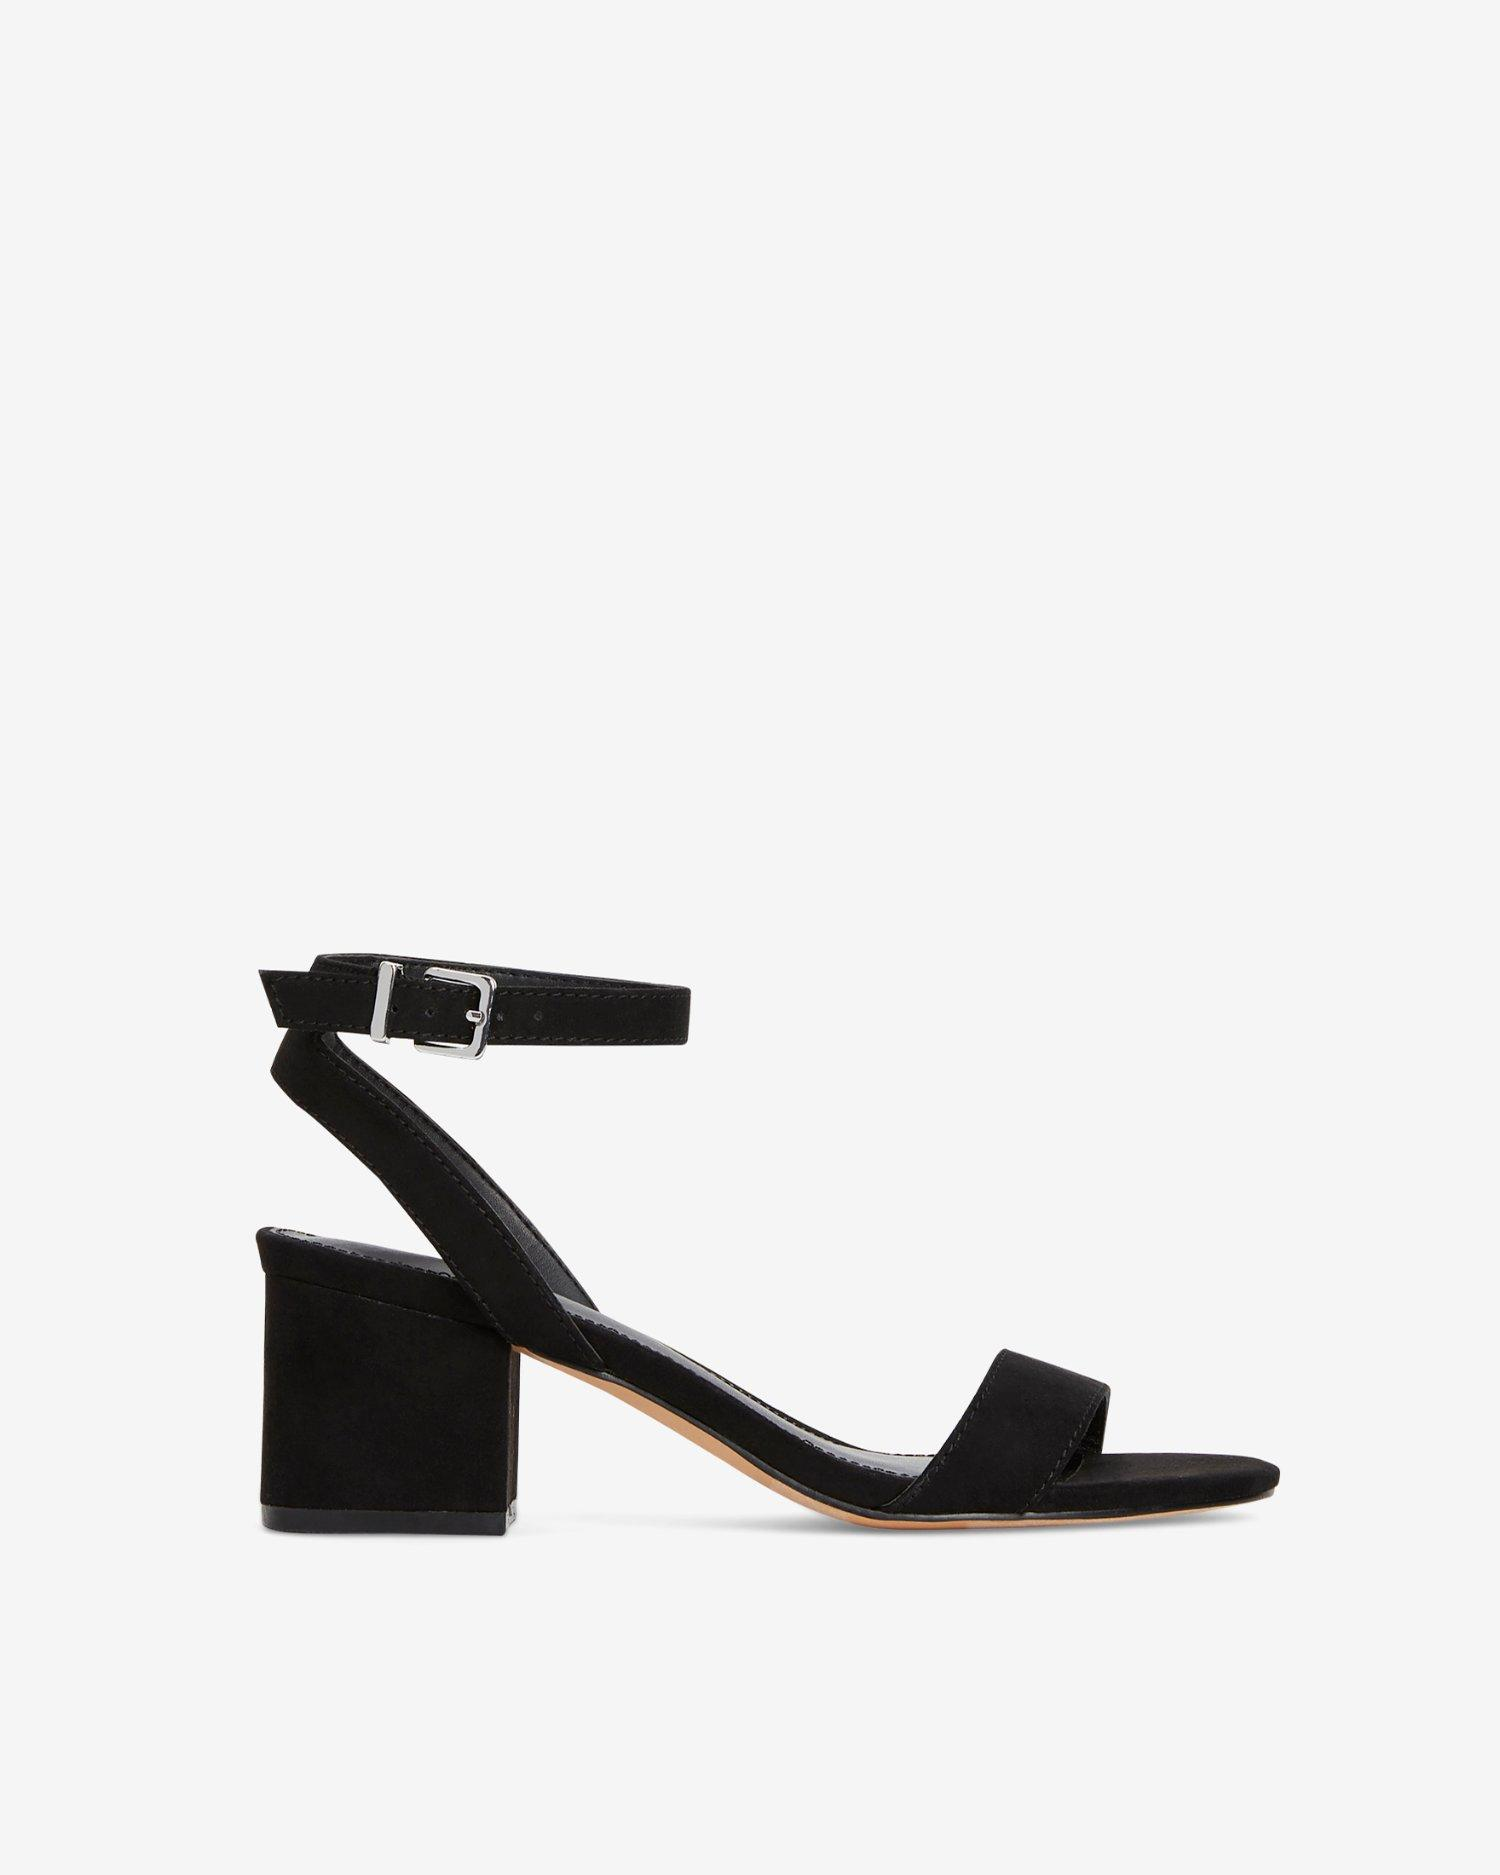 b020eb19d4 Express Faux Suede Low Block Heeled Sandals Black in Black - Save 32 ...